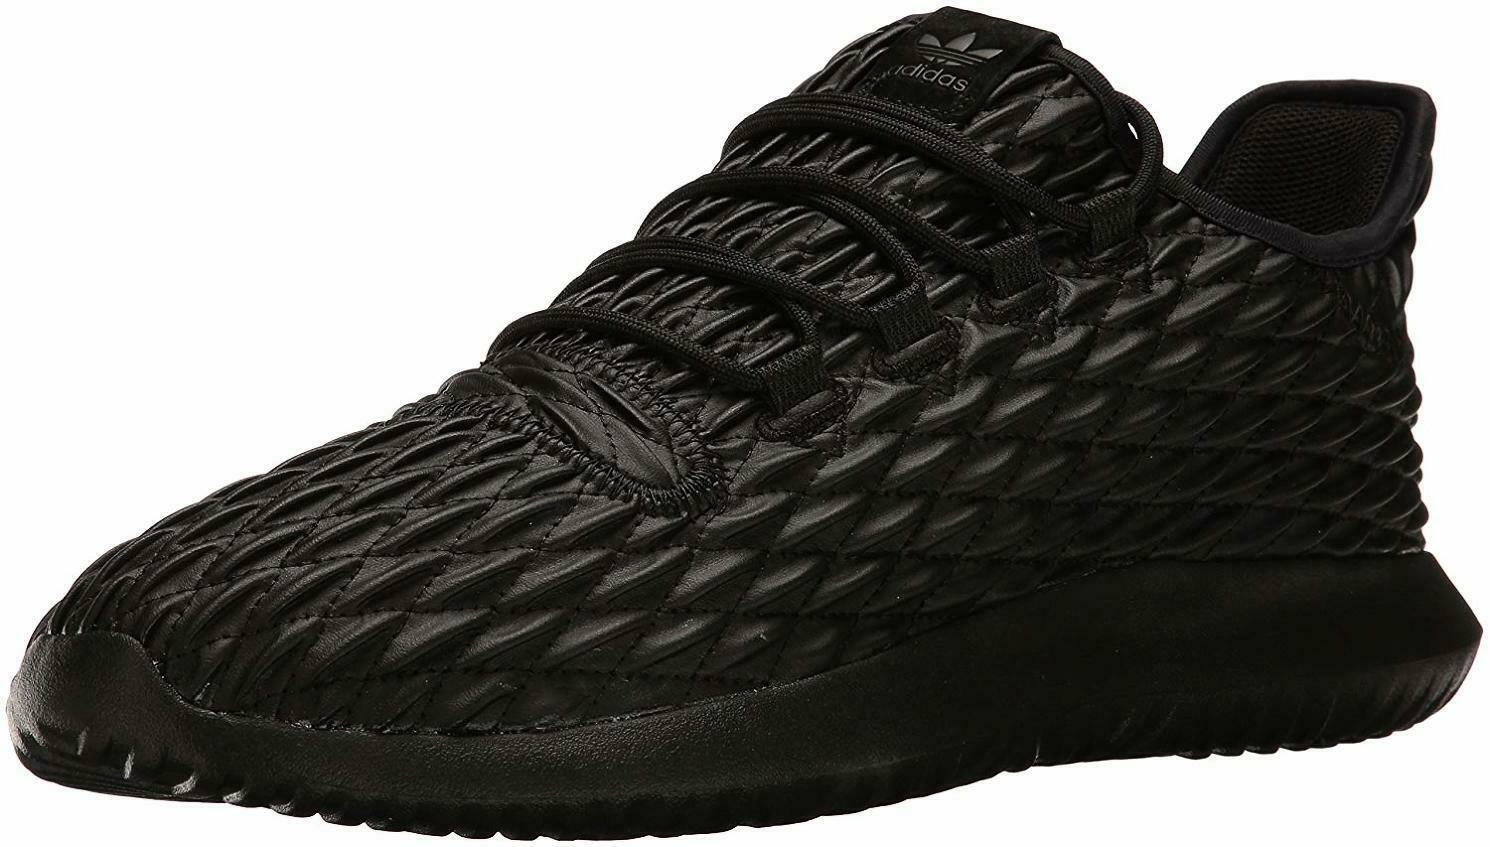 Adidas Originals Men's Tubular Shadow Fashion Running shoes